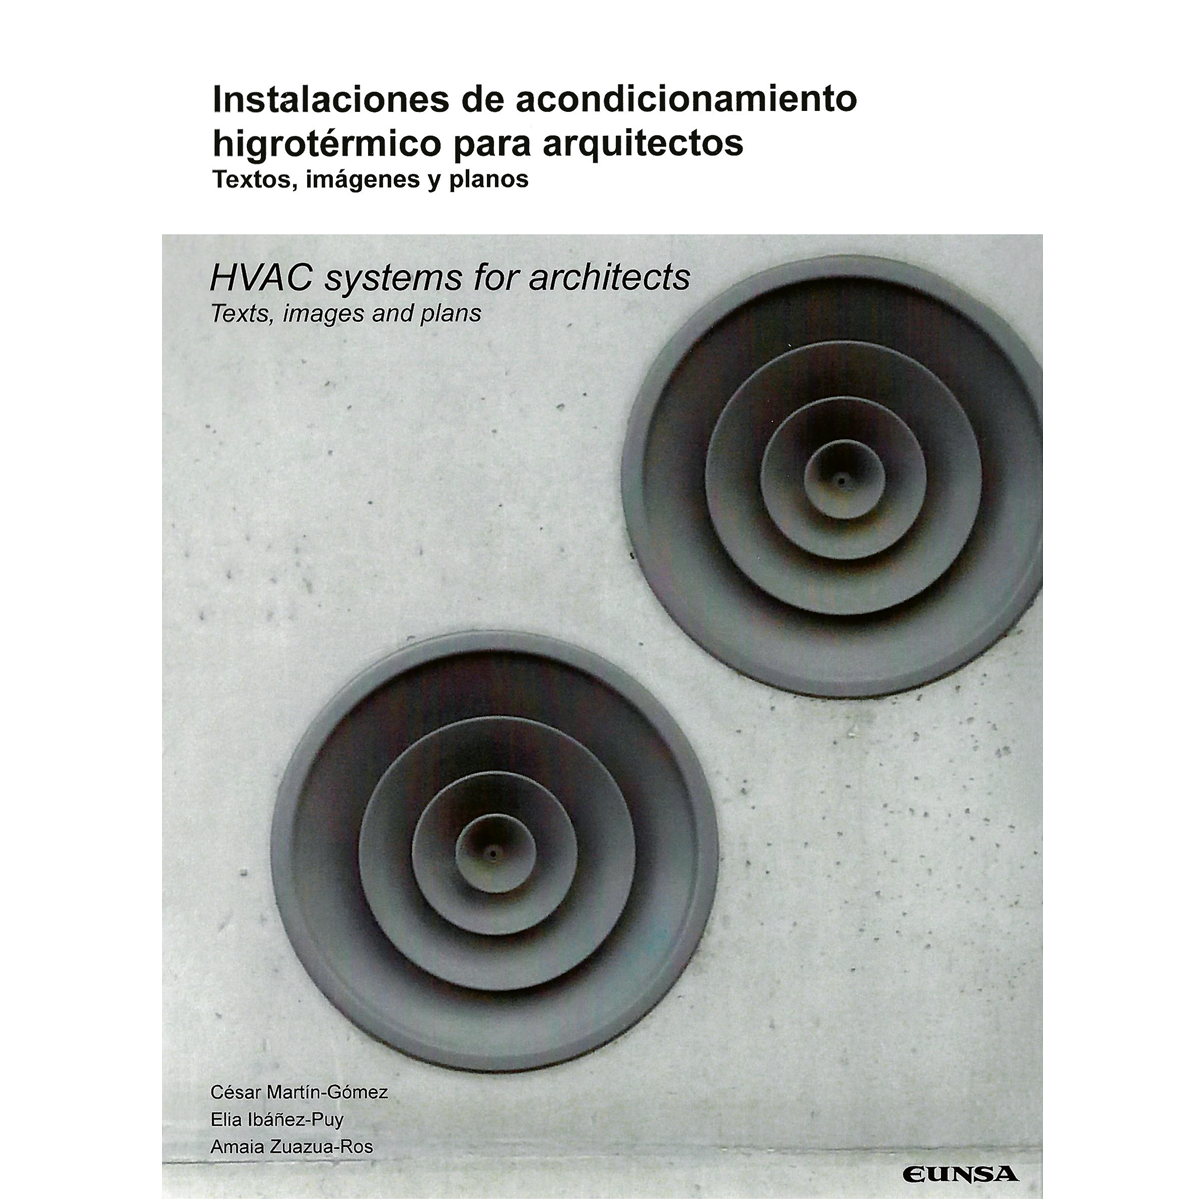 HVAC systems for architects